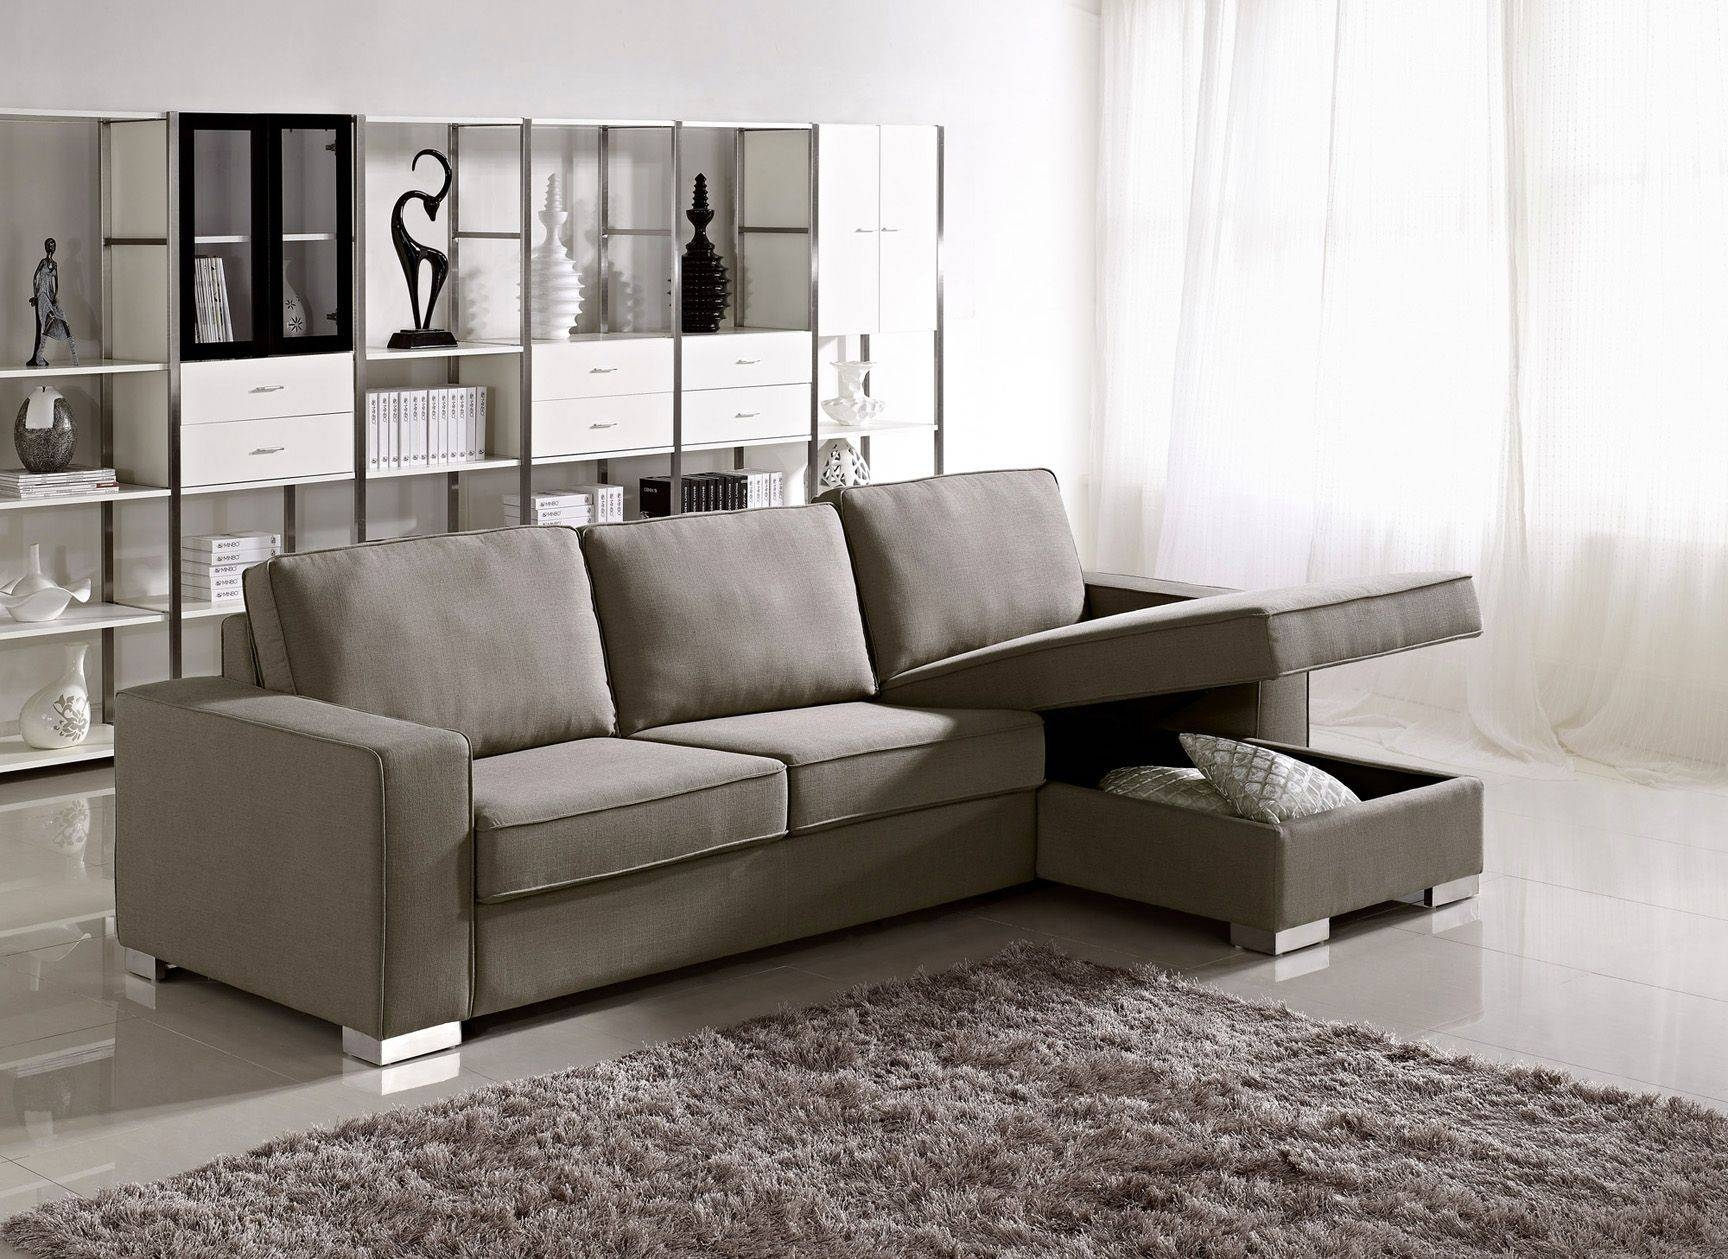 Furniture: Comfortable Deep Seat Sectional For Your Living Room in Extra Wide Sectional Sofas (Image 18 of 30)